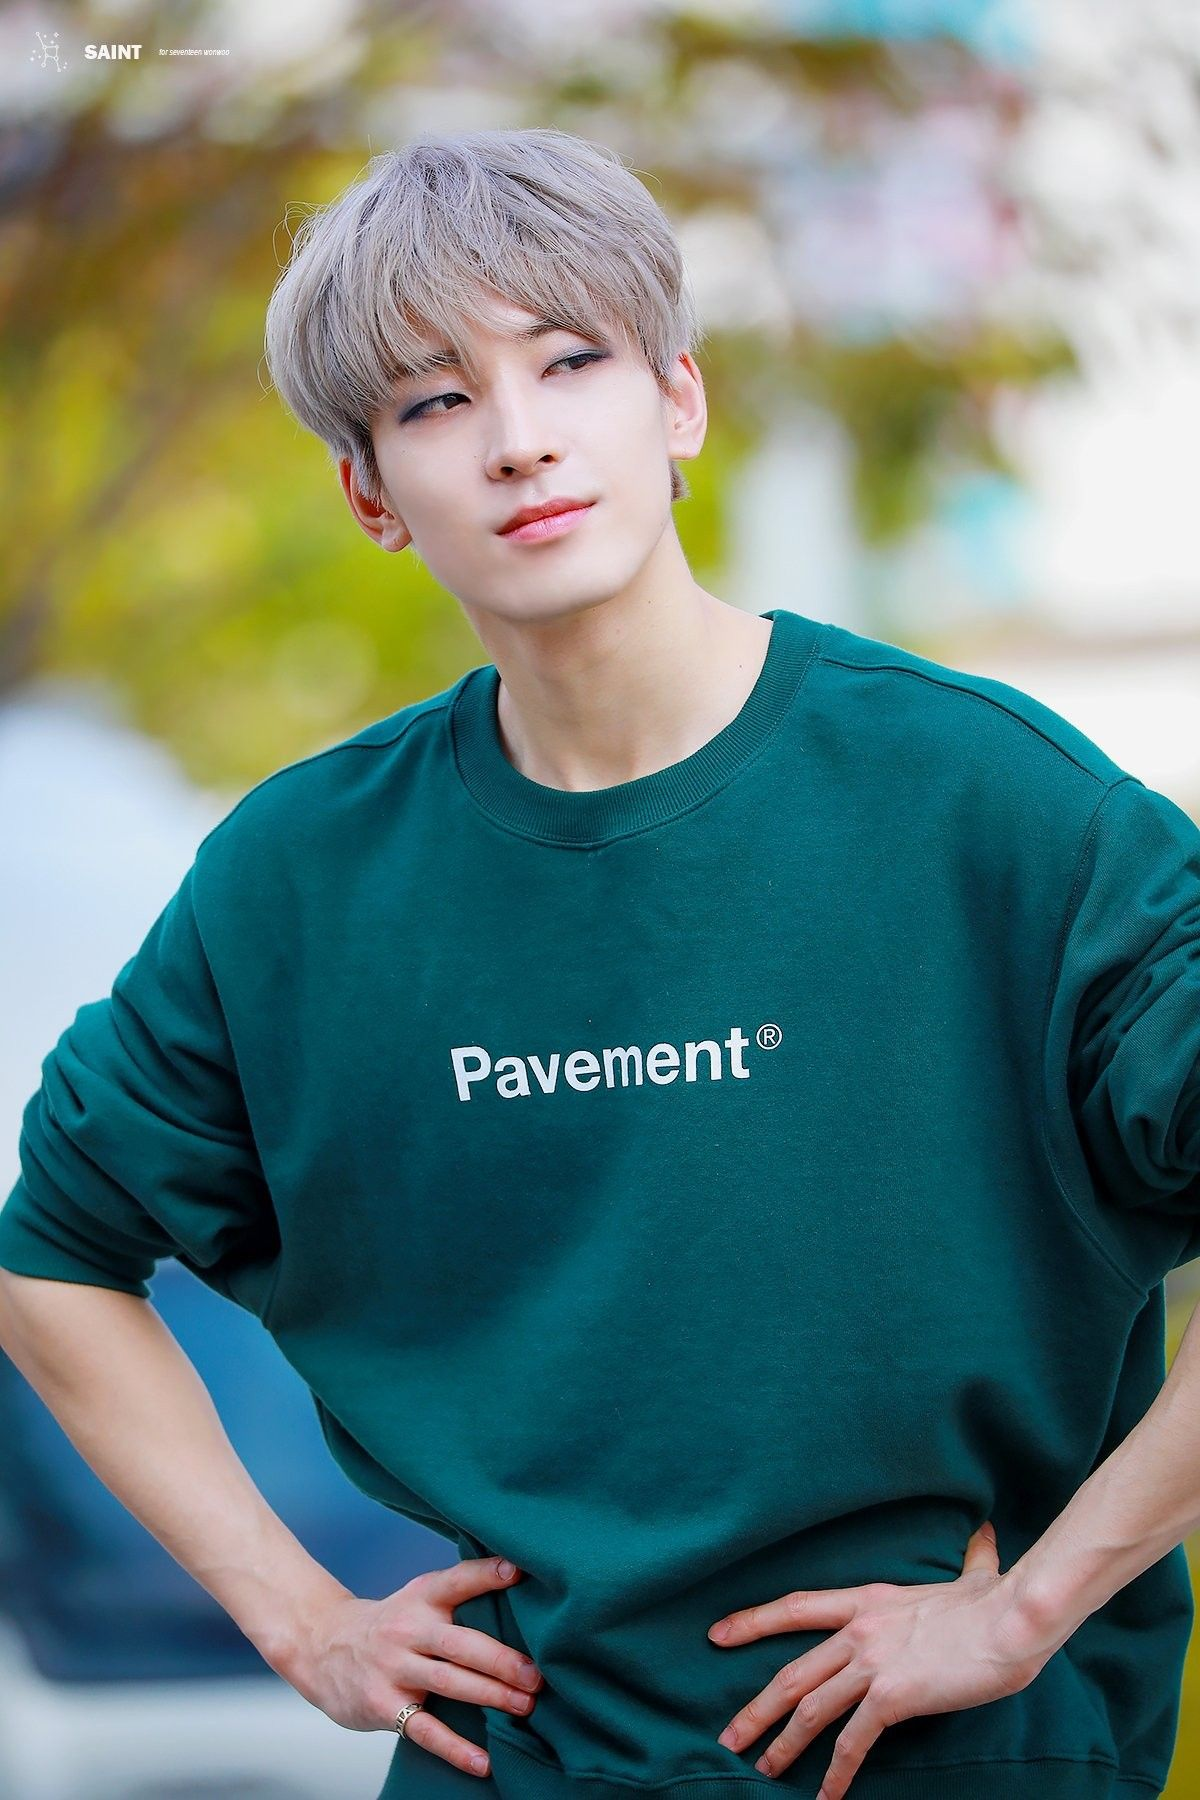 190928 #SEVENTEEN at Music Core Mini Fanmeeting - #Wonwoo © Saint